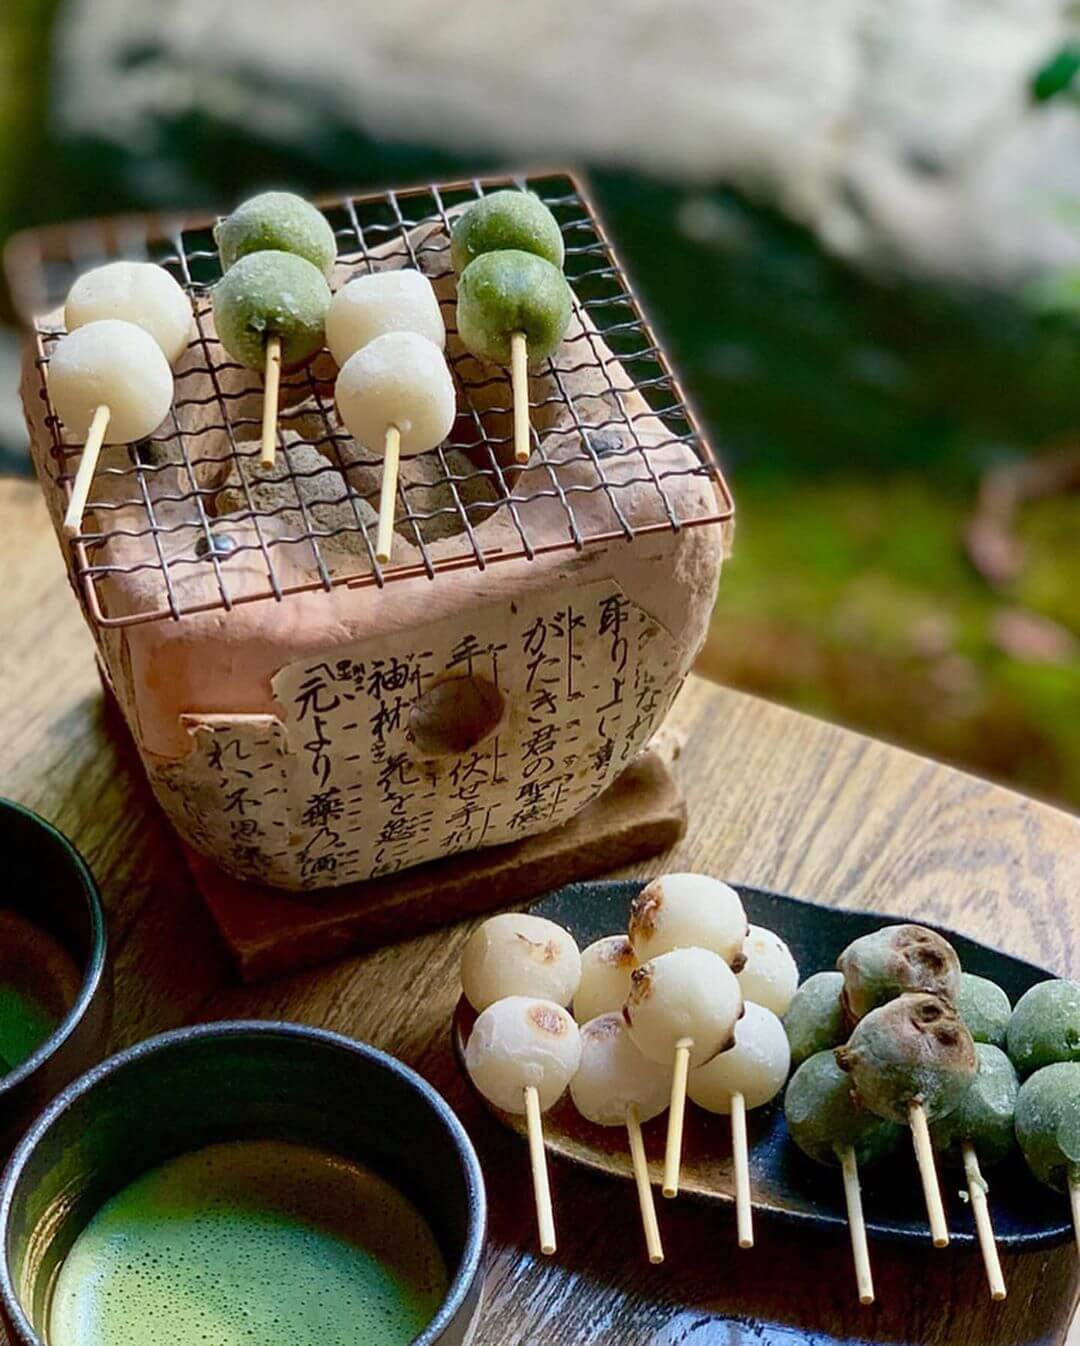 Yaki or grilled dango